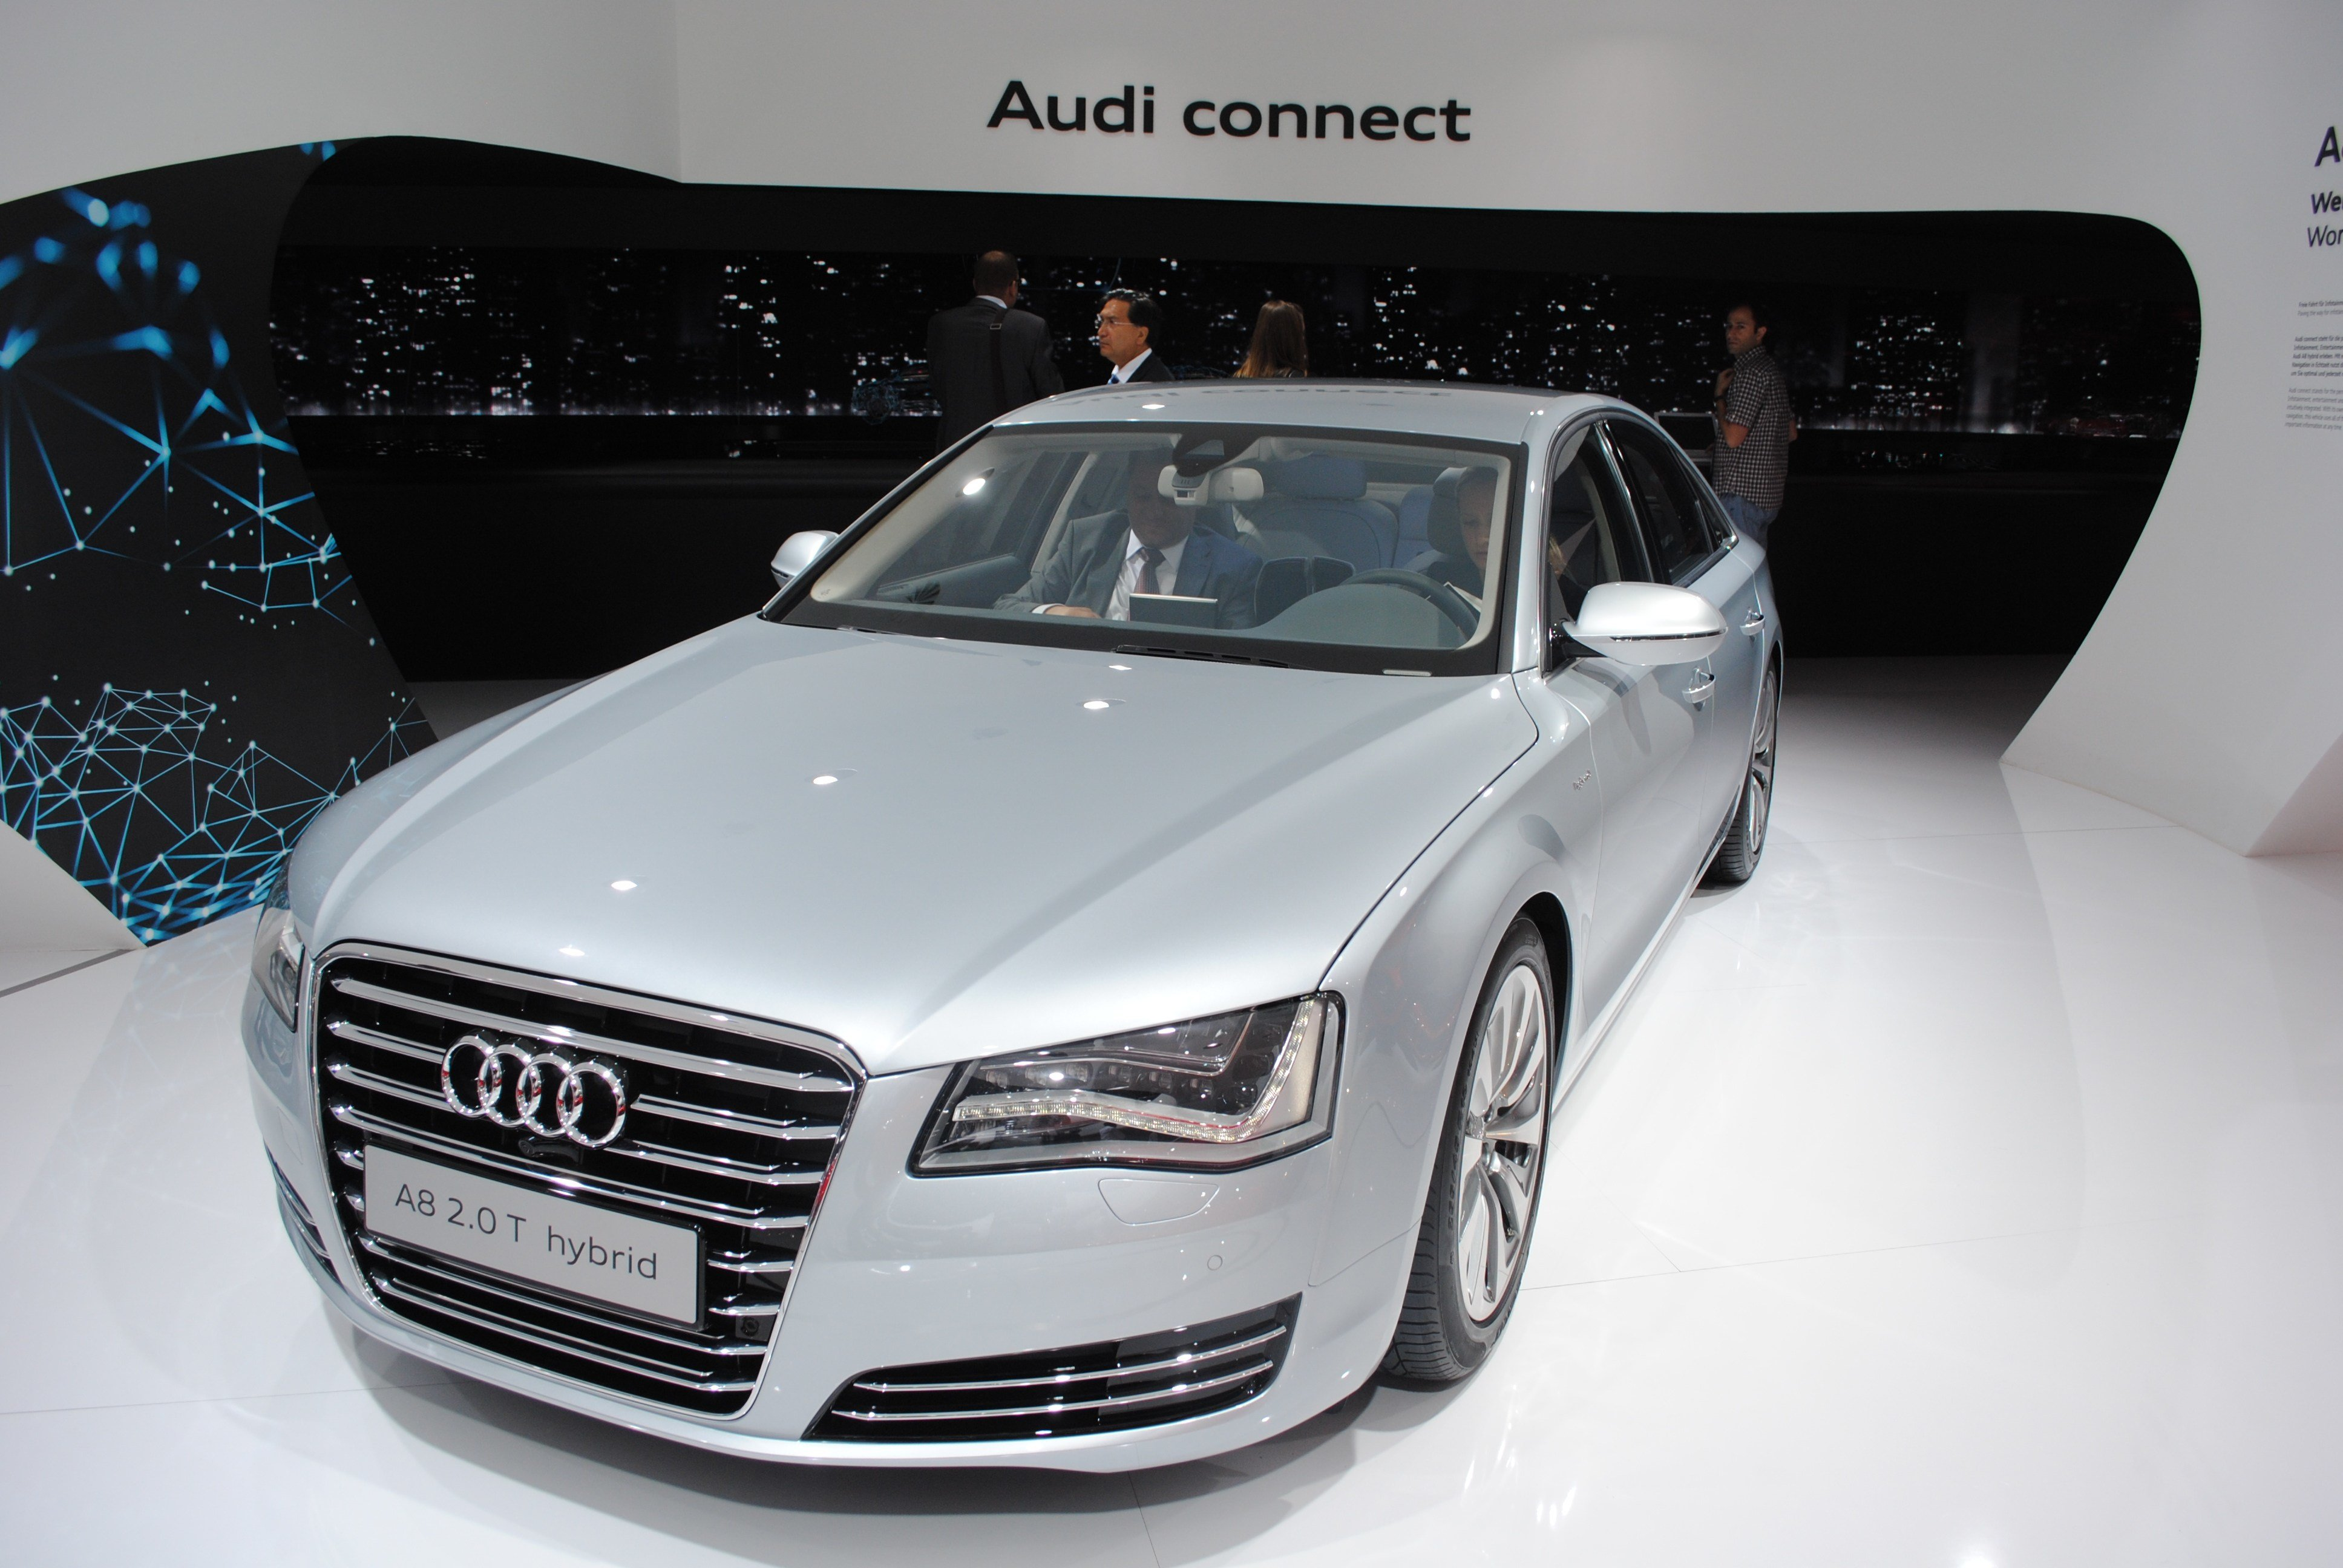 Latest 2004 Audi A8 Long 4E – Pictures Information And Specs Free Download